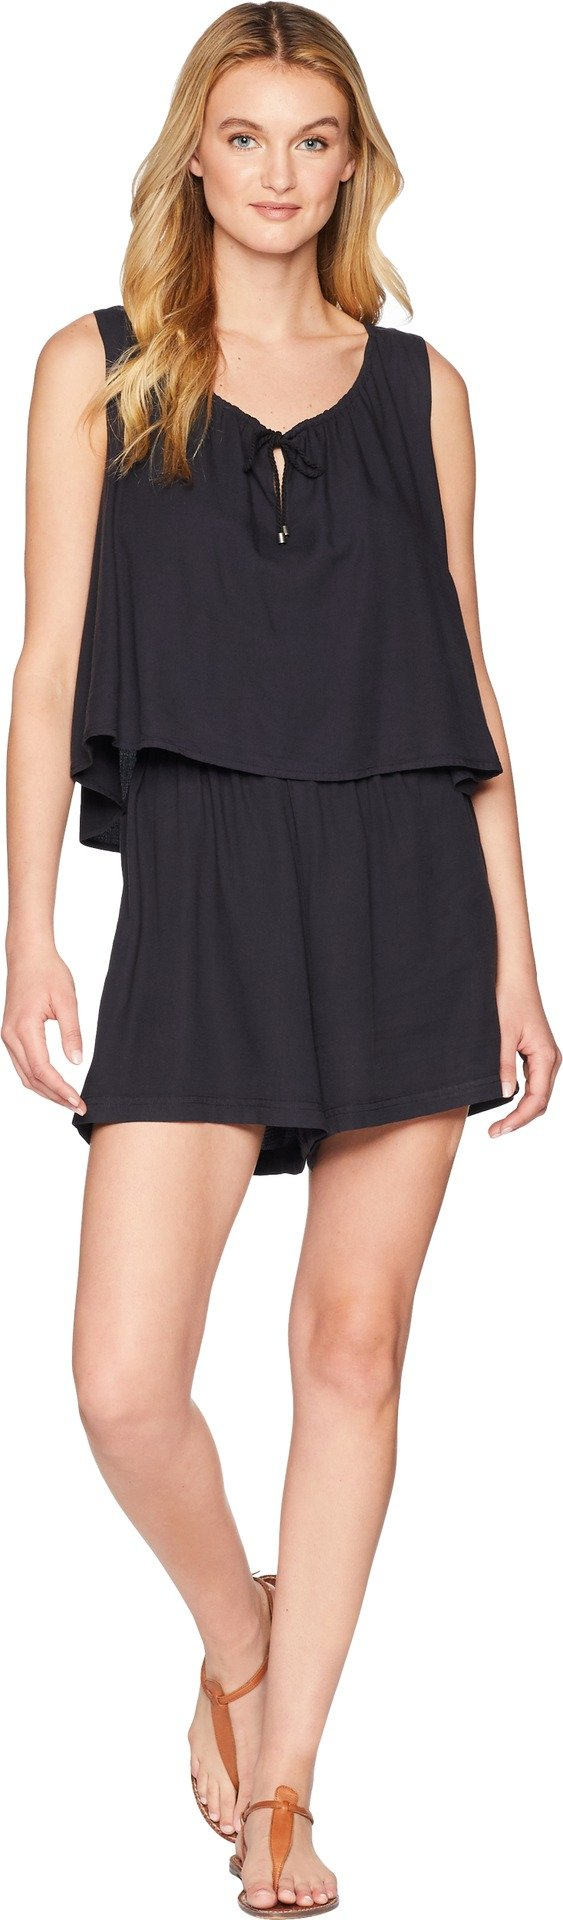 Splendid Women's Twofer Romper, Black, S